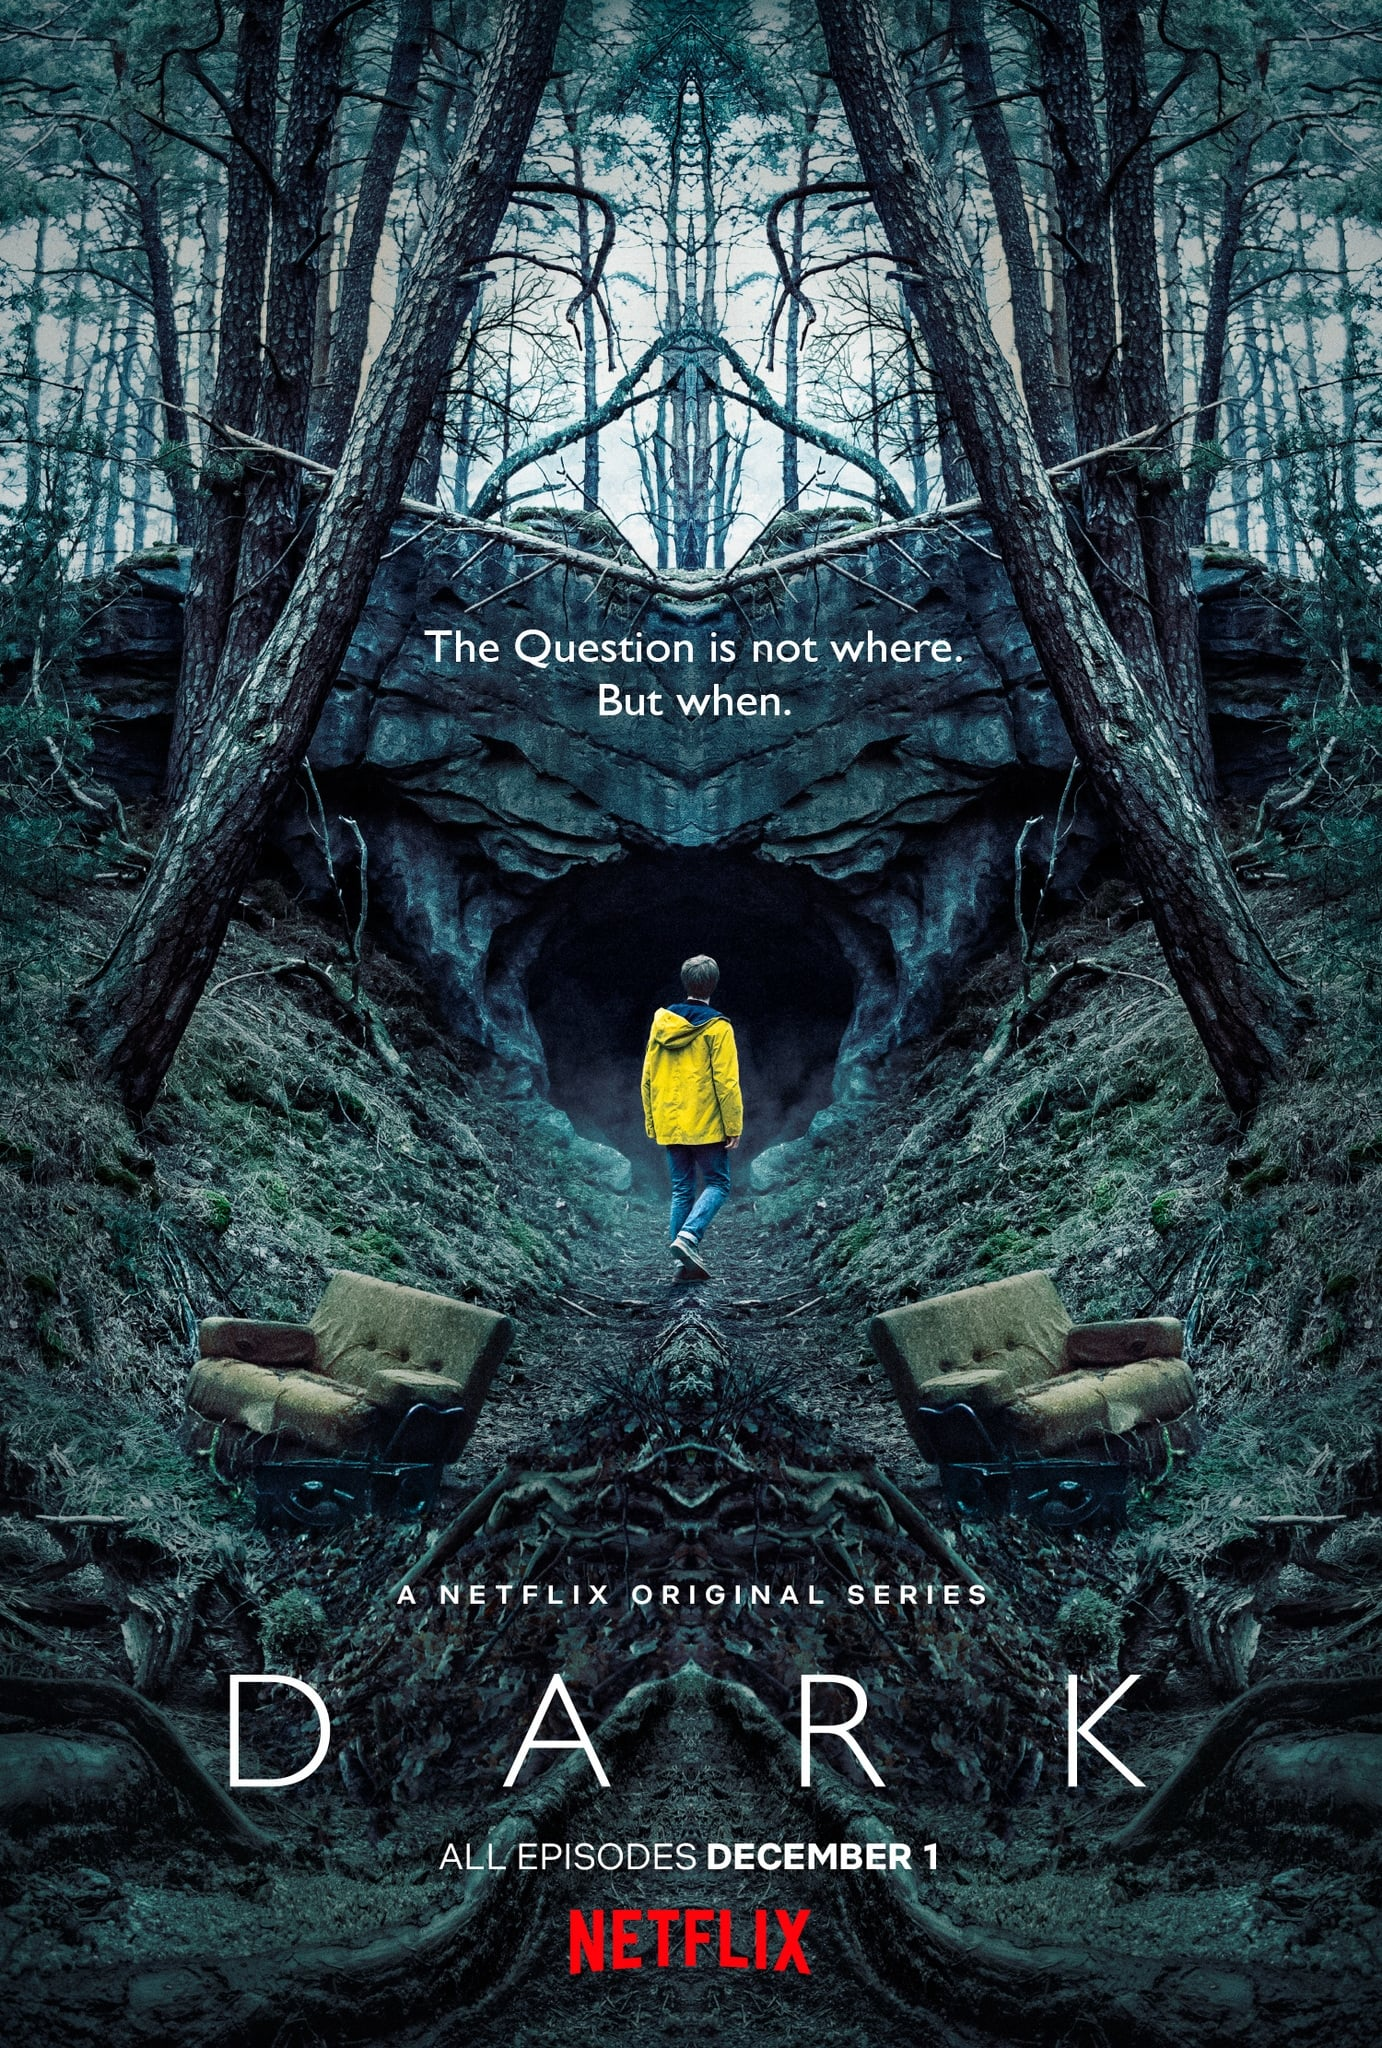 Dark S01 (2017) [German+English] | x265 HEVC 10Bit WEB-Rip | 1080p | 720p | 480p | Download | Watch Online | GDrive | Direct Links